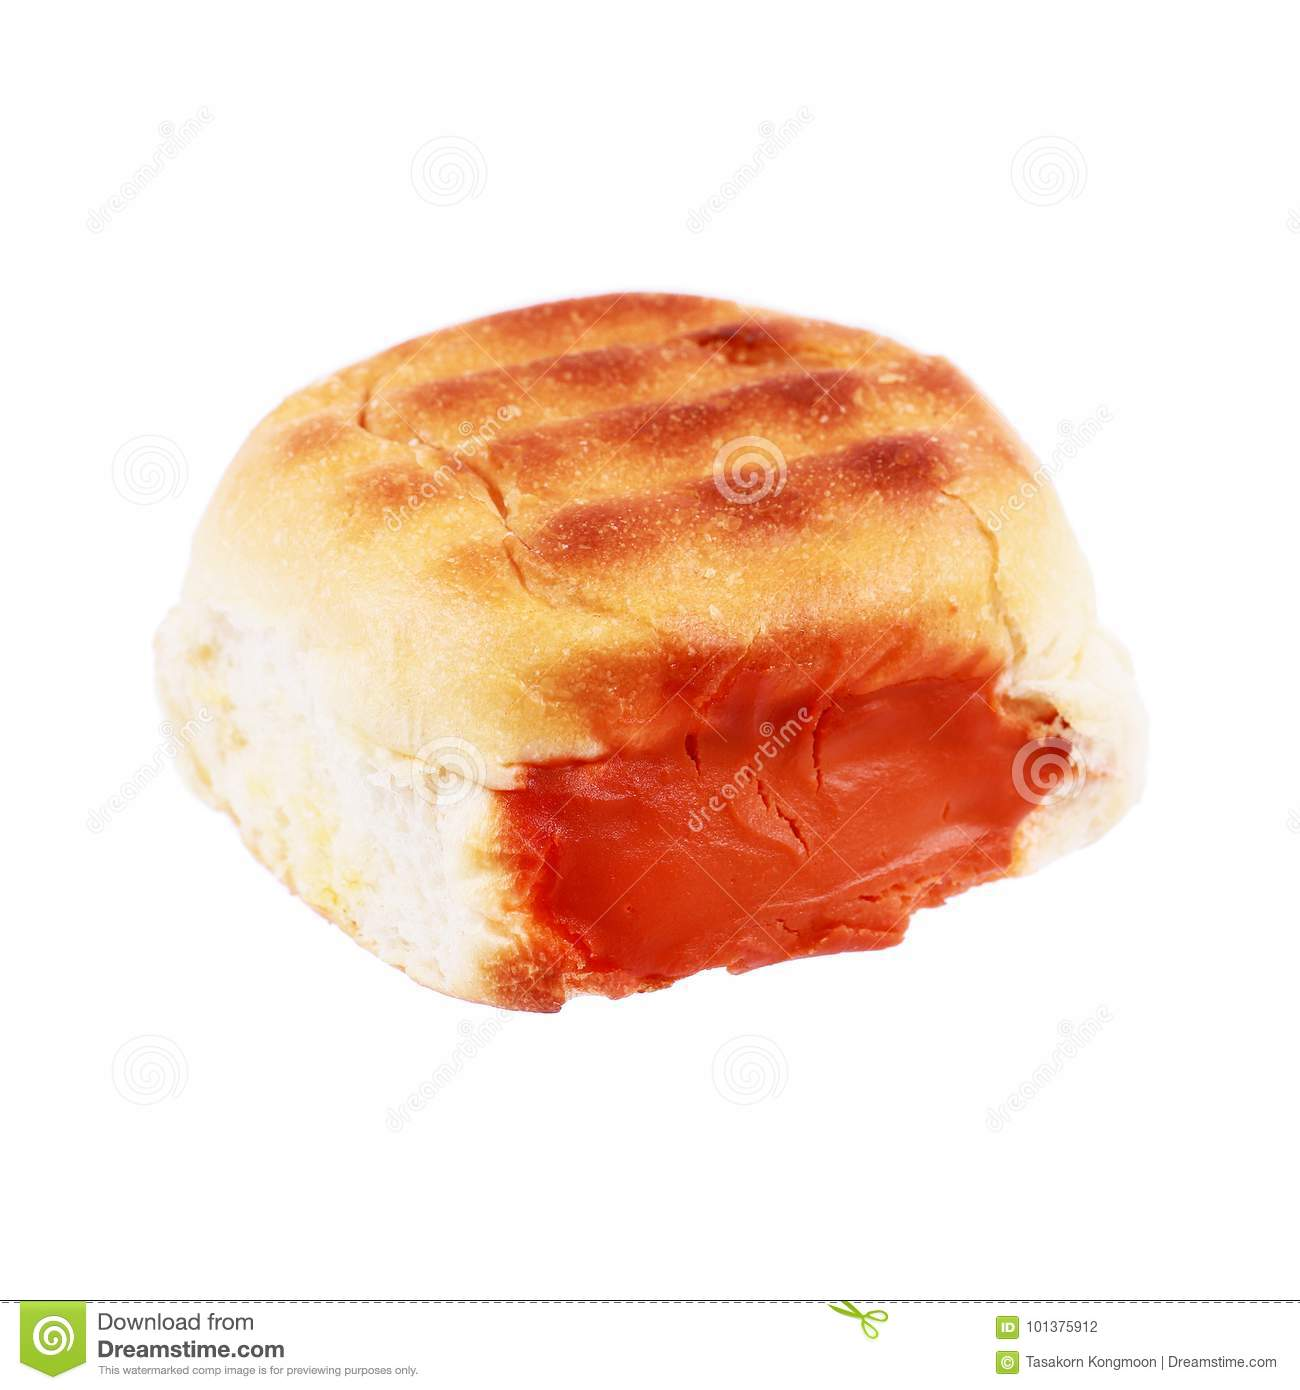 loaf of baked bread stuffed with lava cream isolated on white